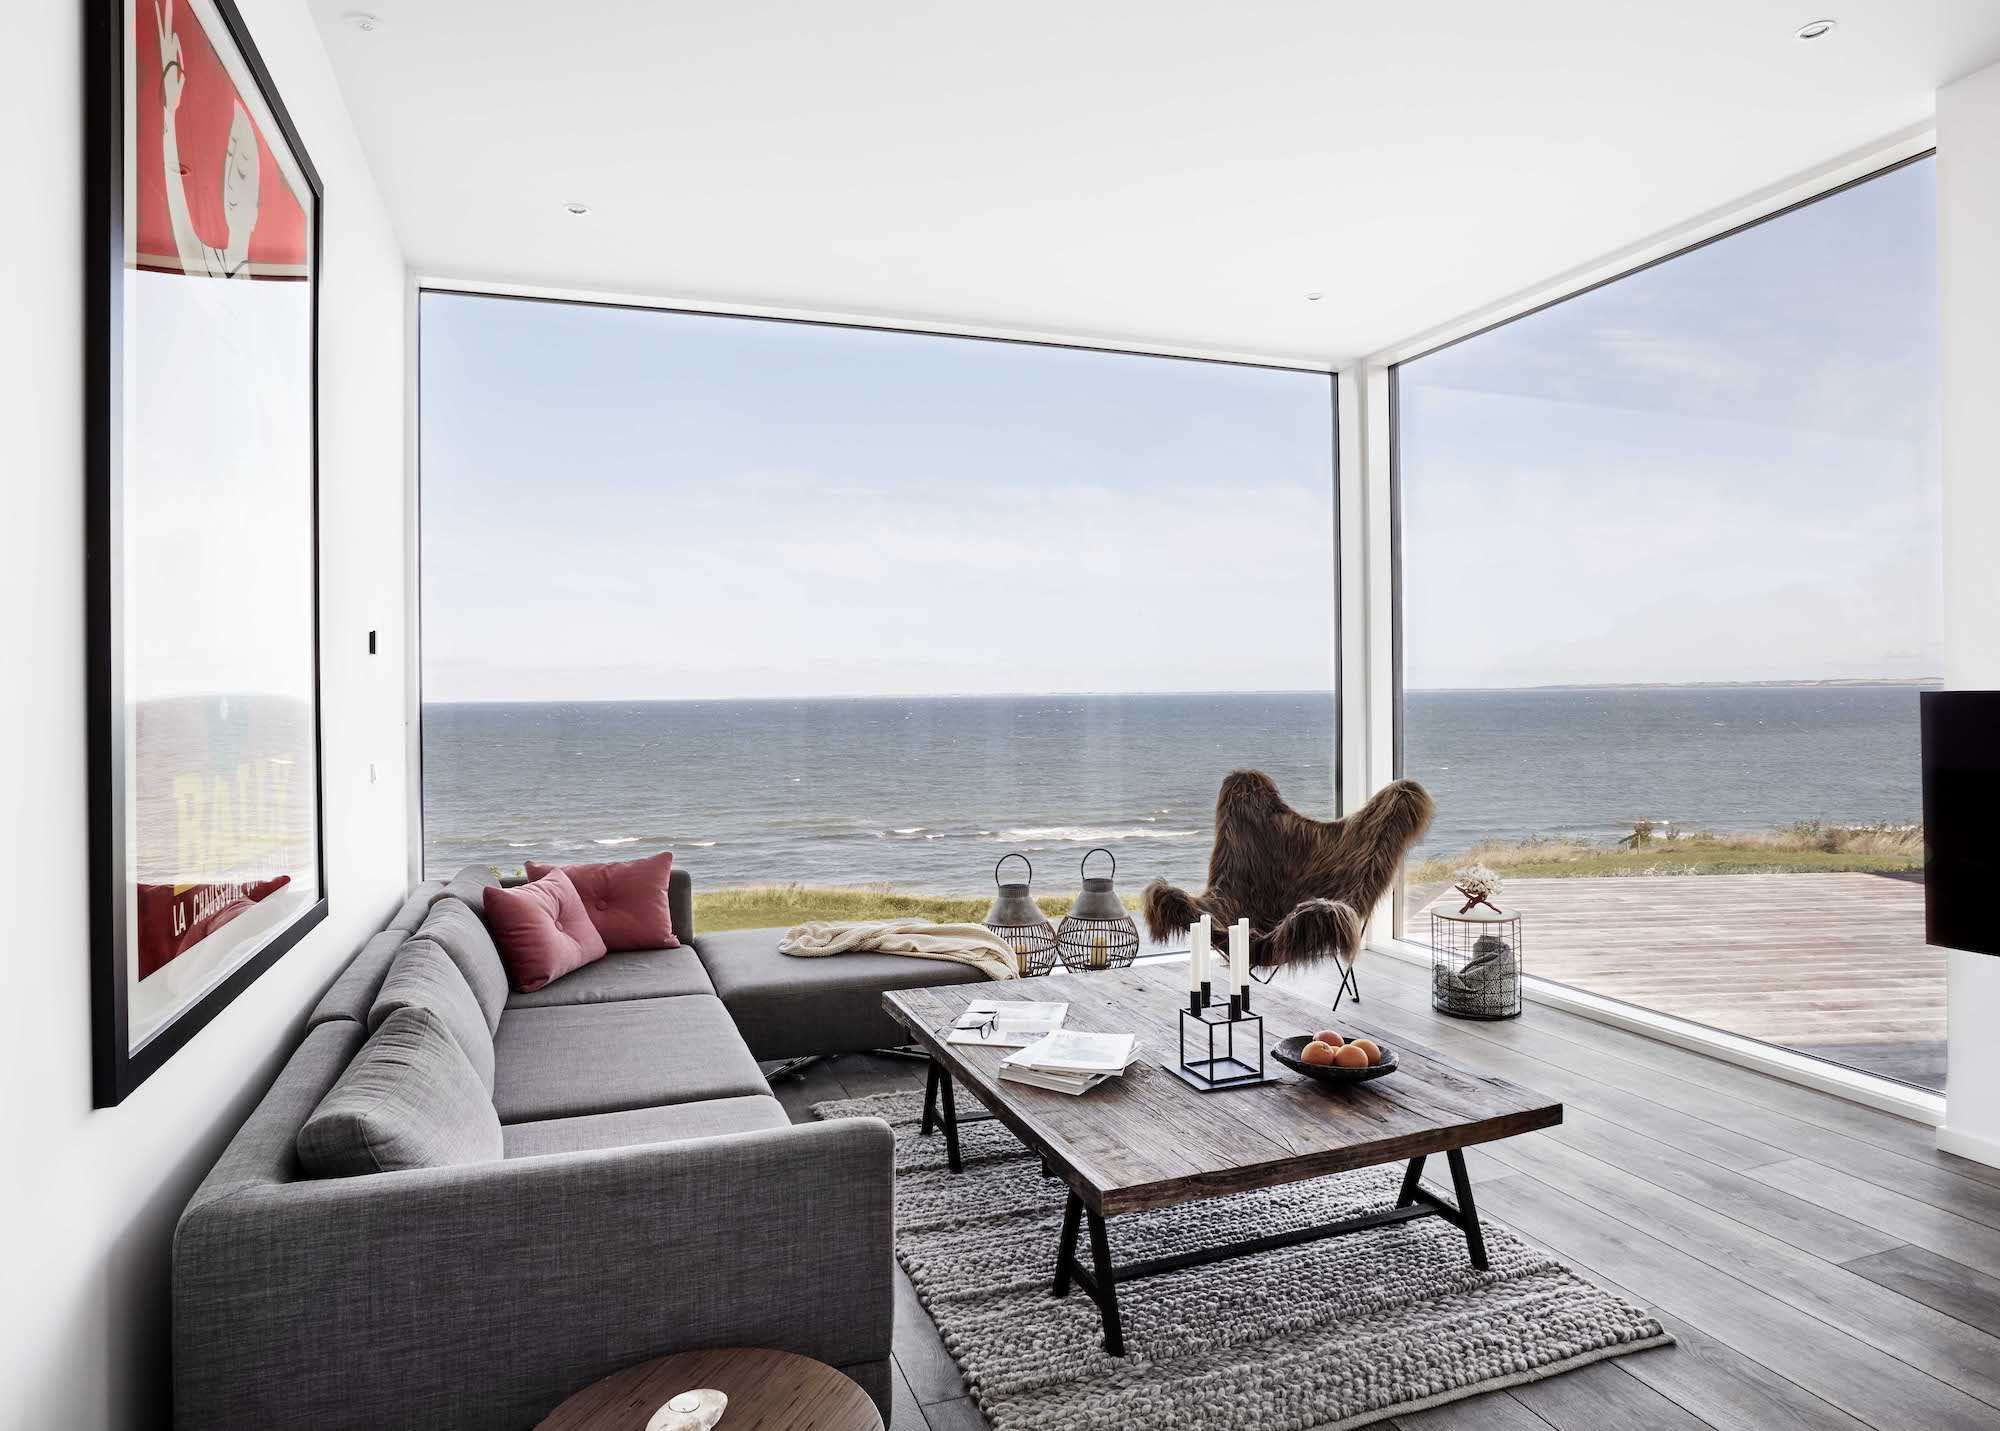 living room with sofa and wooden table has spectacular sea view